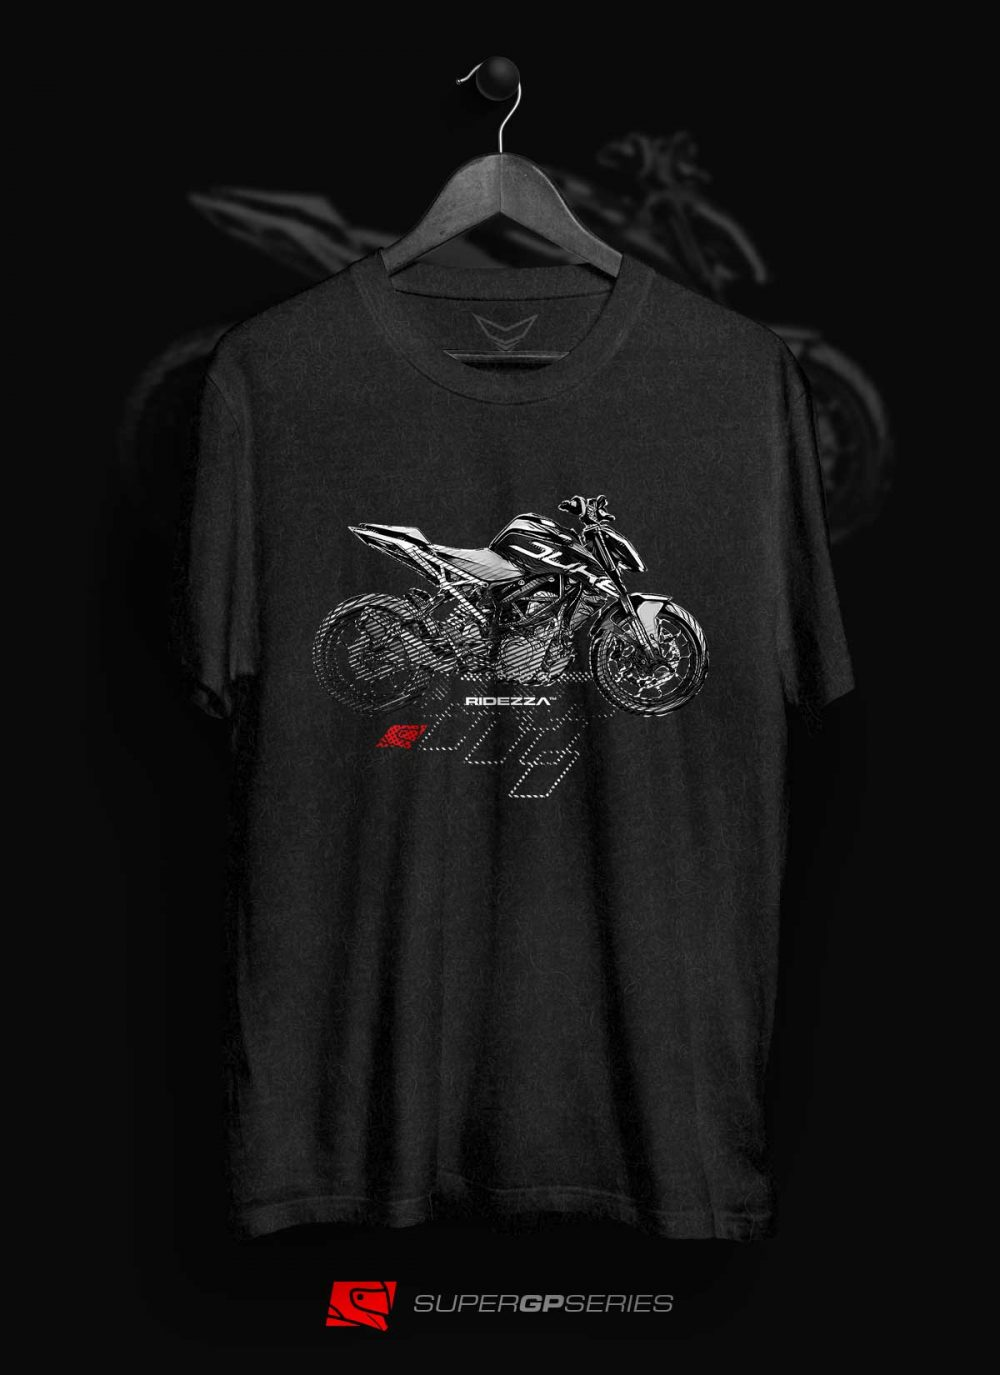 Ridezza 390 Duke SuperGP Series T-Shirt